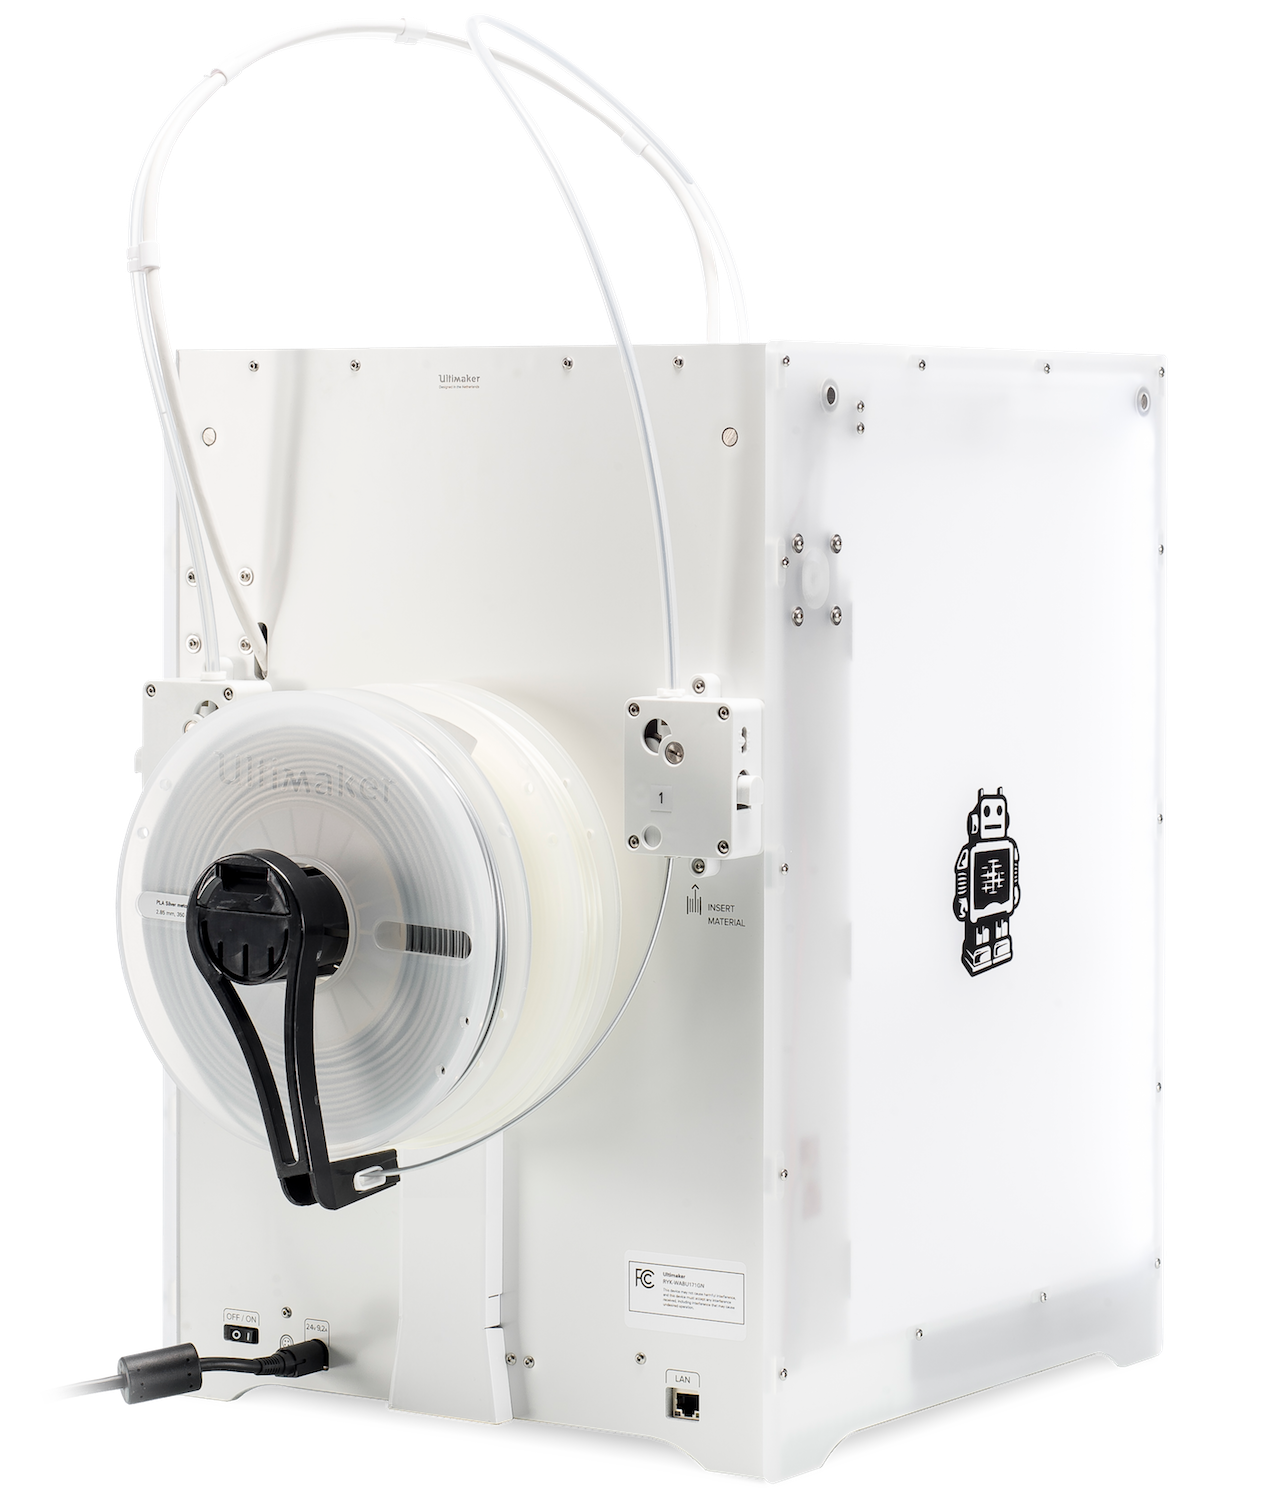 Rear view of the new Ultimaker 3 desktop 3D printer. Note the two filament spools on a single axle